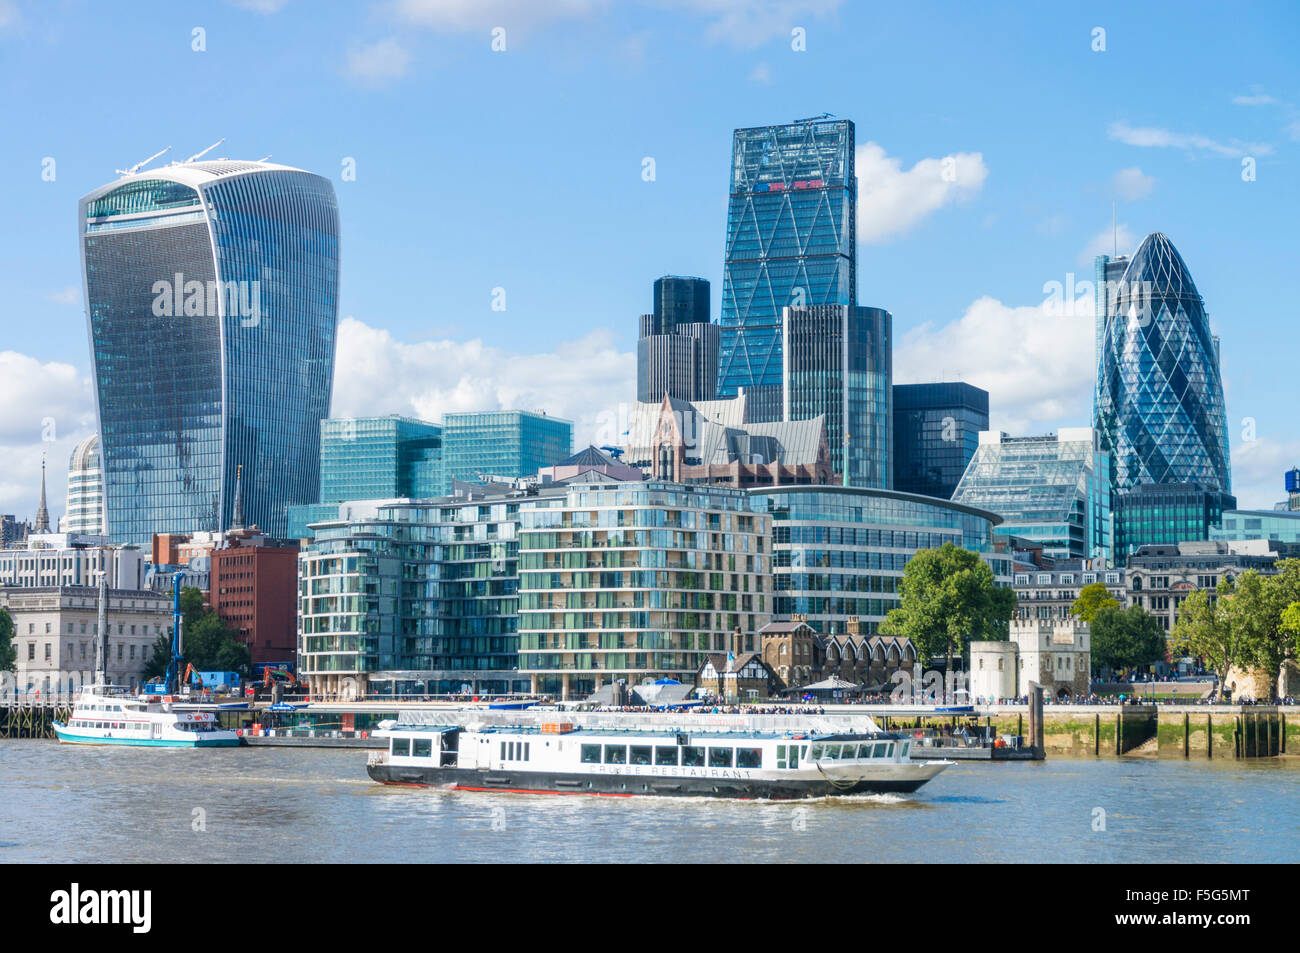 City of London skyline financial district skyscrapers River Thames City of London UK GB EU Europe - Stock Image